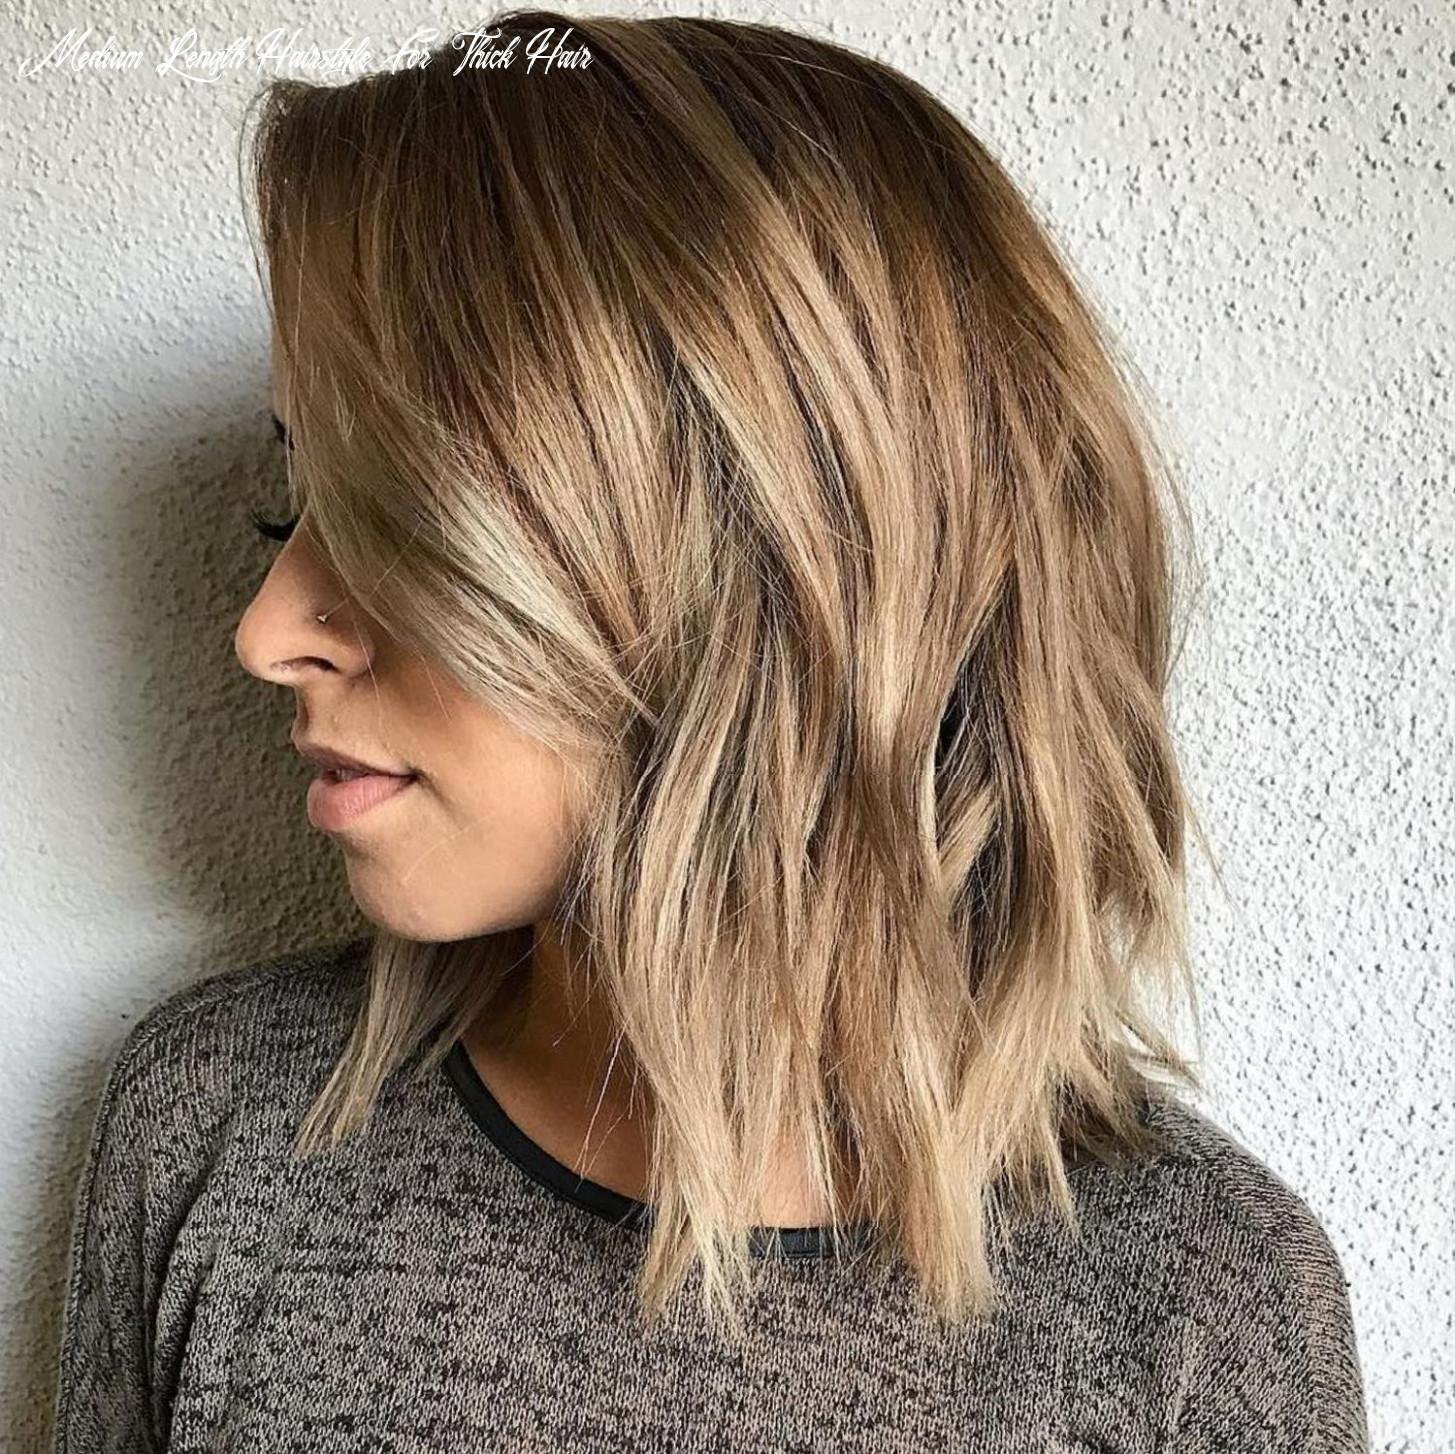 Pin on hair trends medium length hairstyle for thick hair